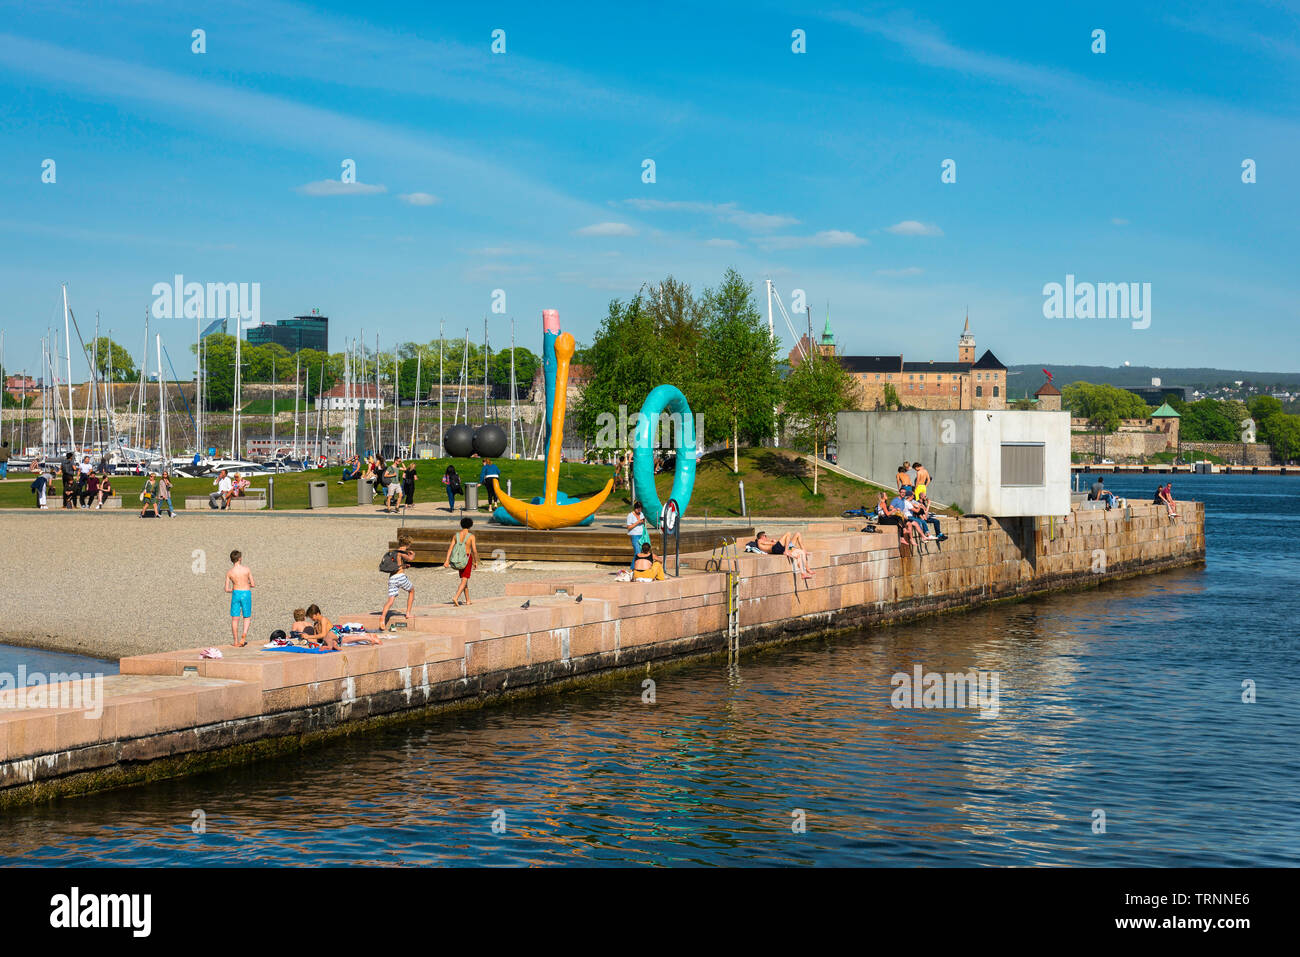 Oslo beach, view of people relaxing on Tjuvholmen City Beach in the harbour area of Oslo, Norway. Stock Photo